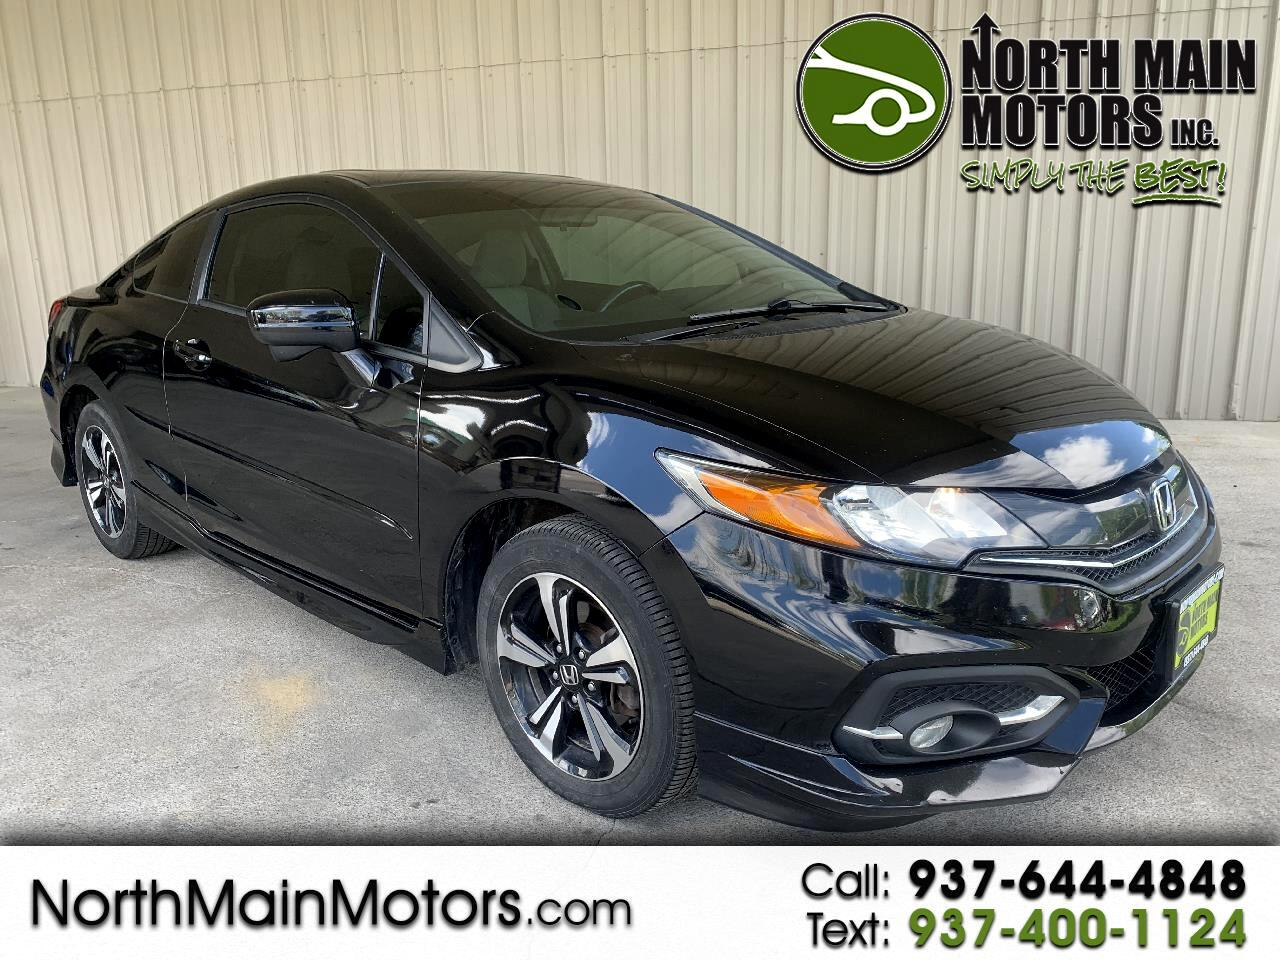 2014 Honda Civic Coupe 2dr CVT EX